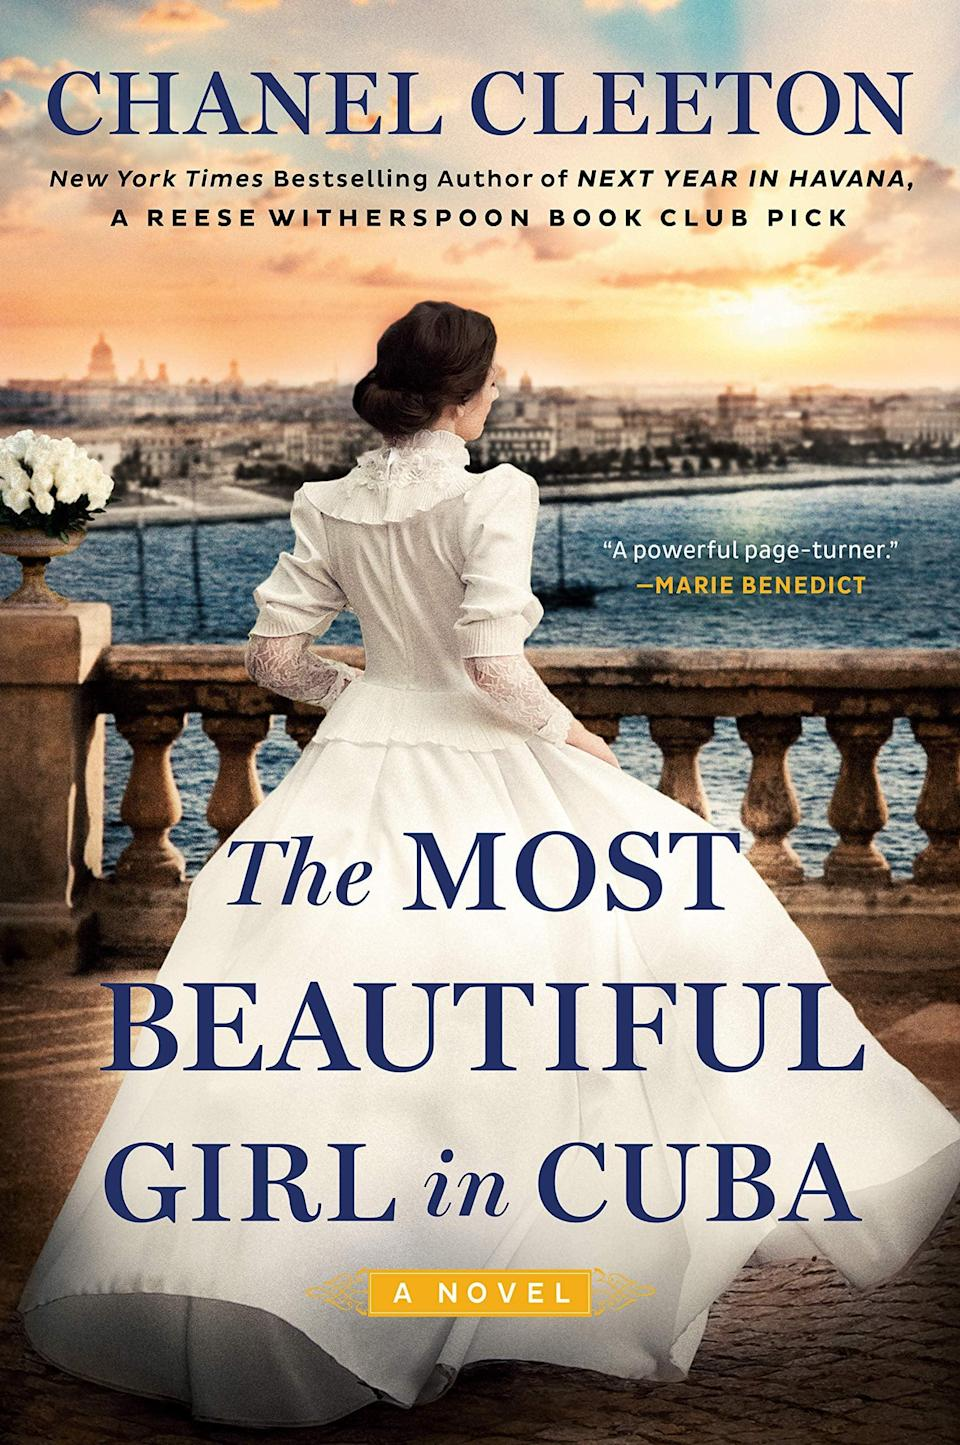 <p><span><strong>The Most Beautiful Girl in Cuba</strong></span> is another riveting historical-fiction novel by Chanel Cleeton. In 1896, Grace Harrington's job at William Randolph Hearst's newspaper leads to her becoming embroiled in Cuba's quest for independence when she writes a story about Evangelina Cisneros, an 18-year-old who is imprisoned for fighting for Cuban independence. Soon, Grace's story becomes more than just a scoop for the paper; it becomes a quest to free Evangelina and encourage America to help Cuba in its war with Spain. </p> <p><em>Out May 4</em></p>